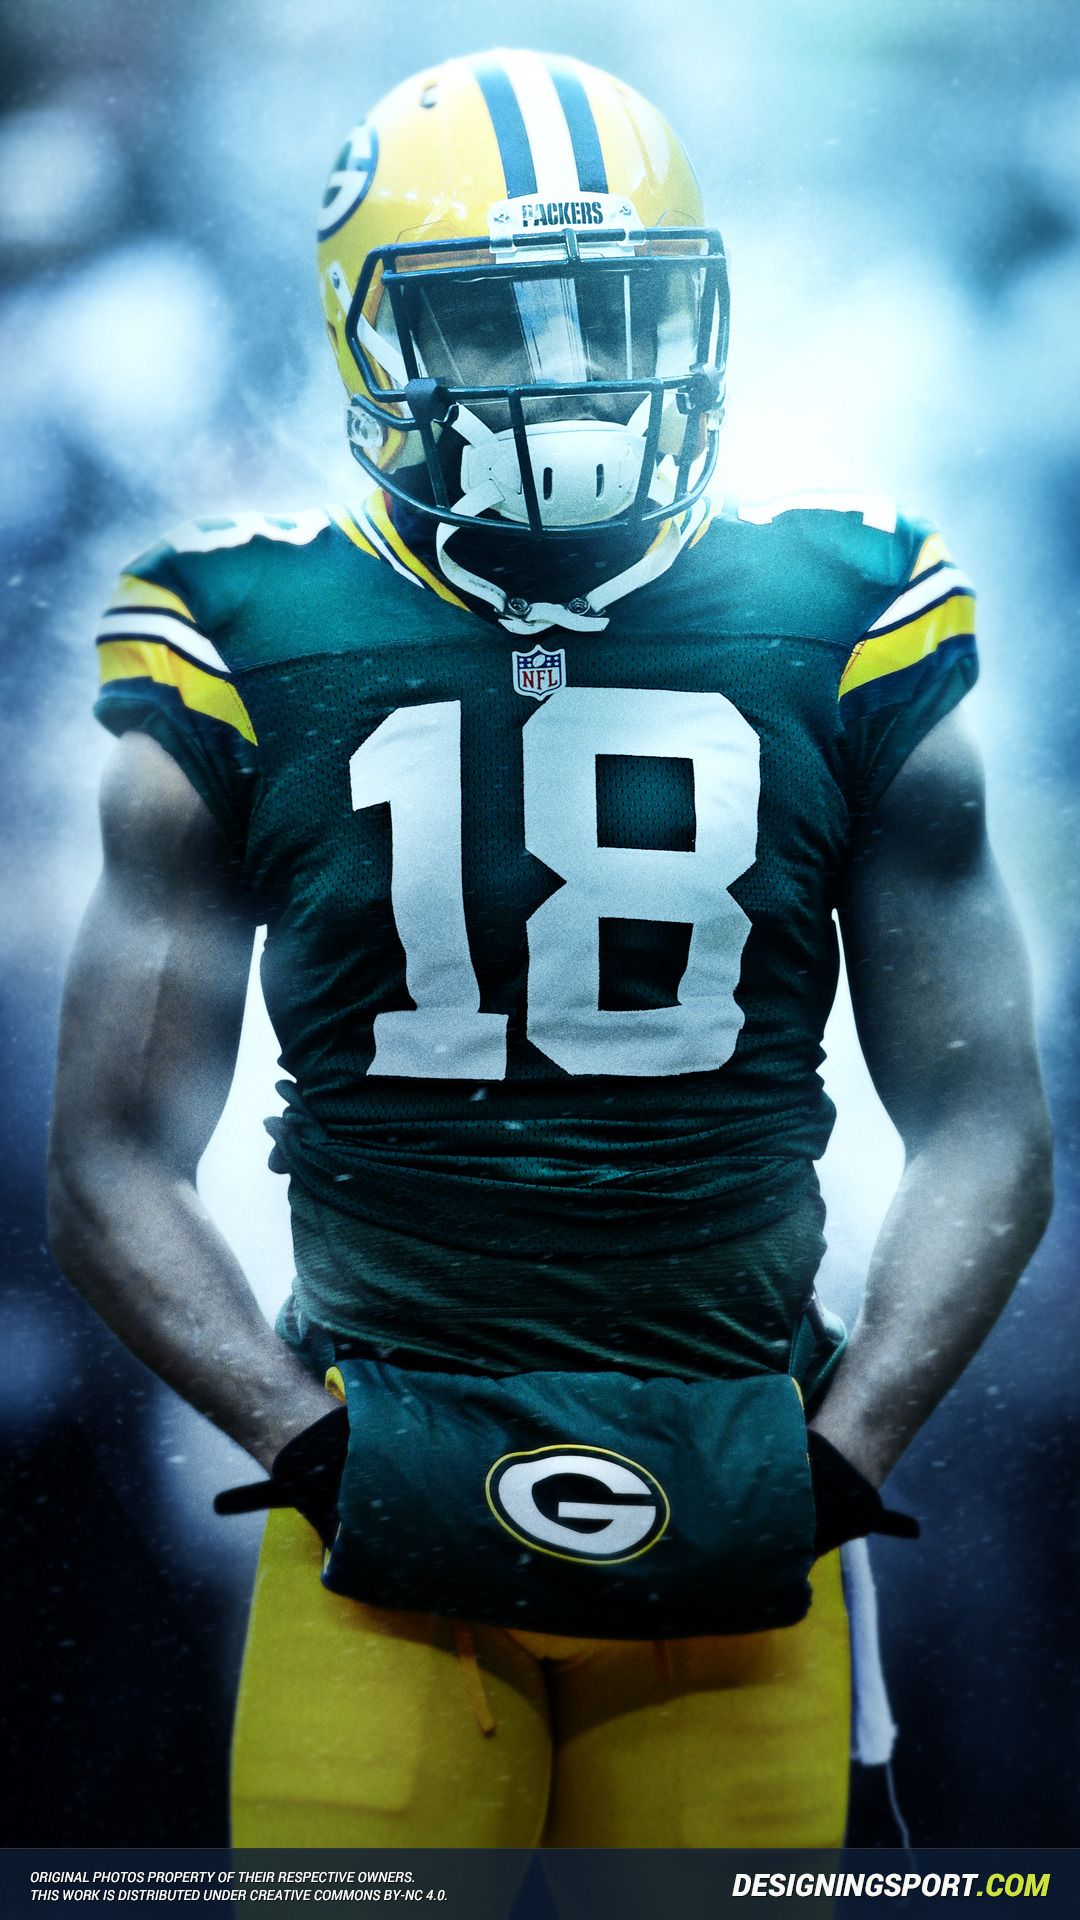 Randall Cobb Iphone Wallpaper 2020 Live Wallpaper Hd Green Bay Packers Wallpaper Green Bay Packers Green Bay Packers Fans